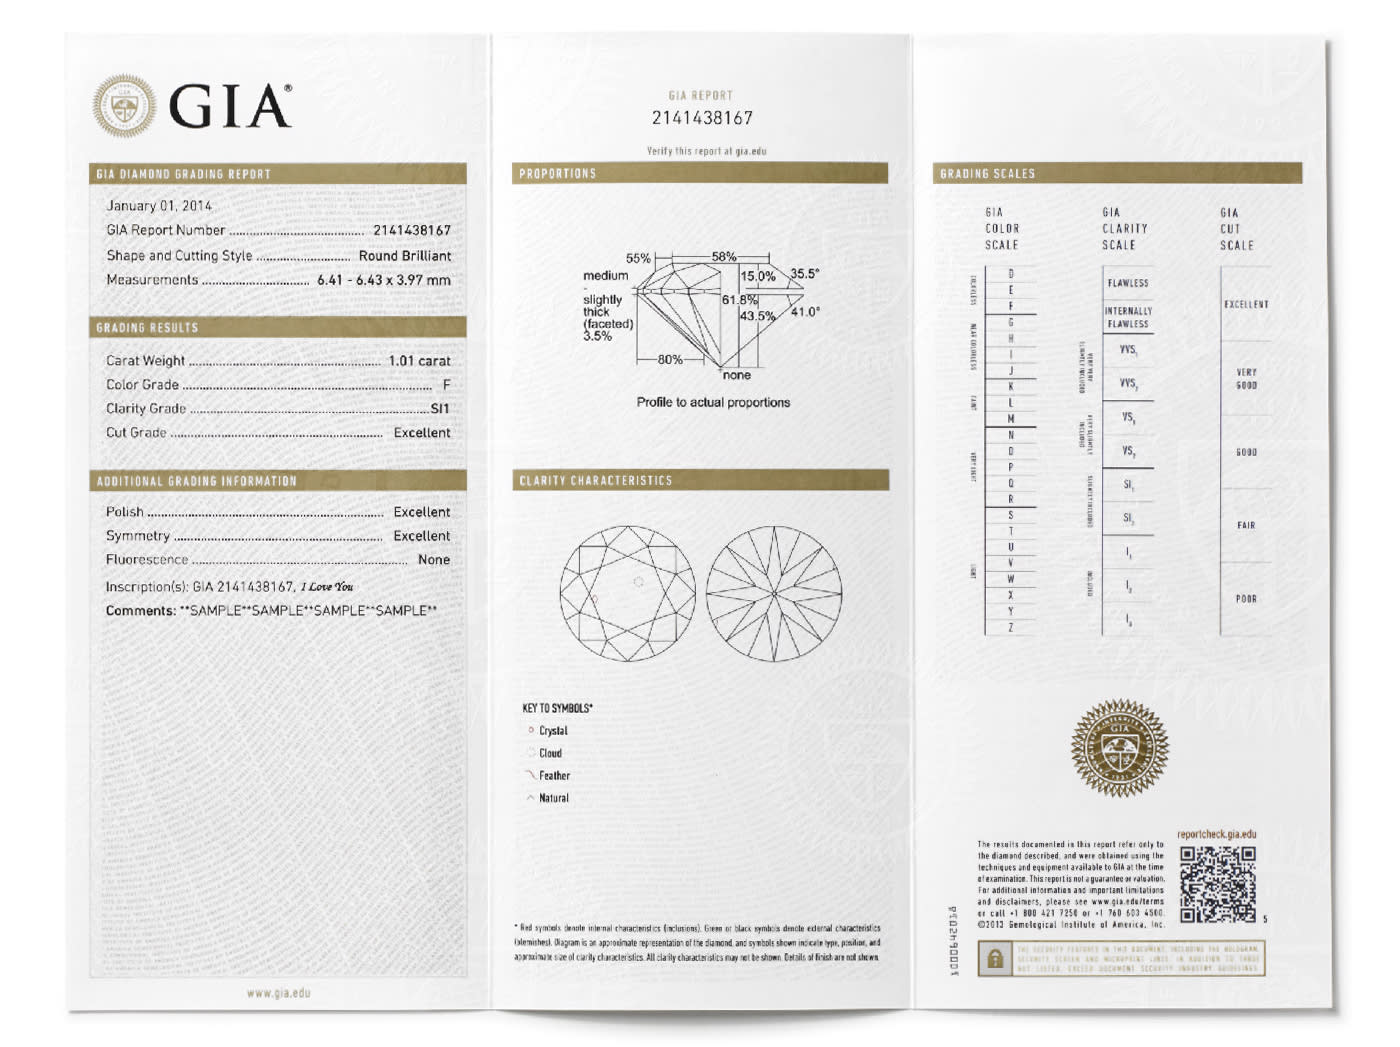 An example of a diamond report provided by the Gemological Institute of America.